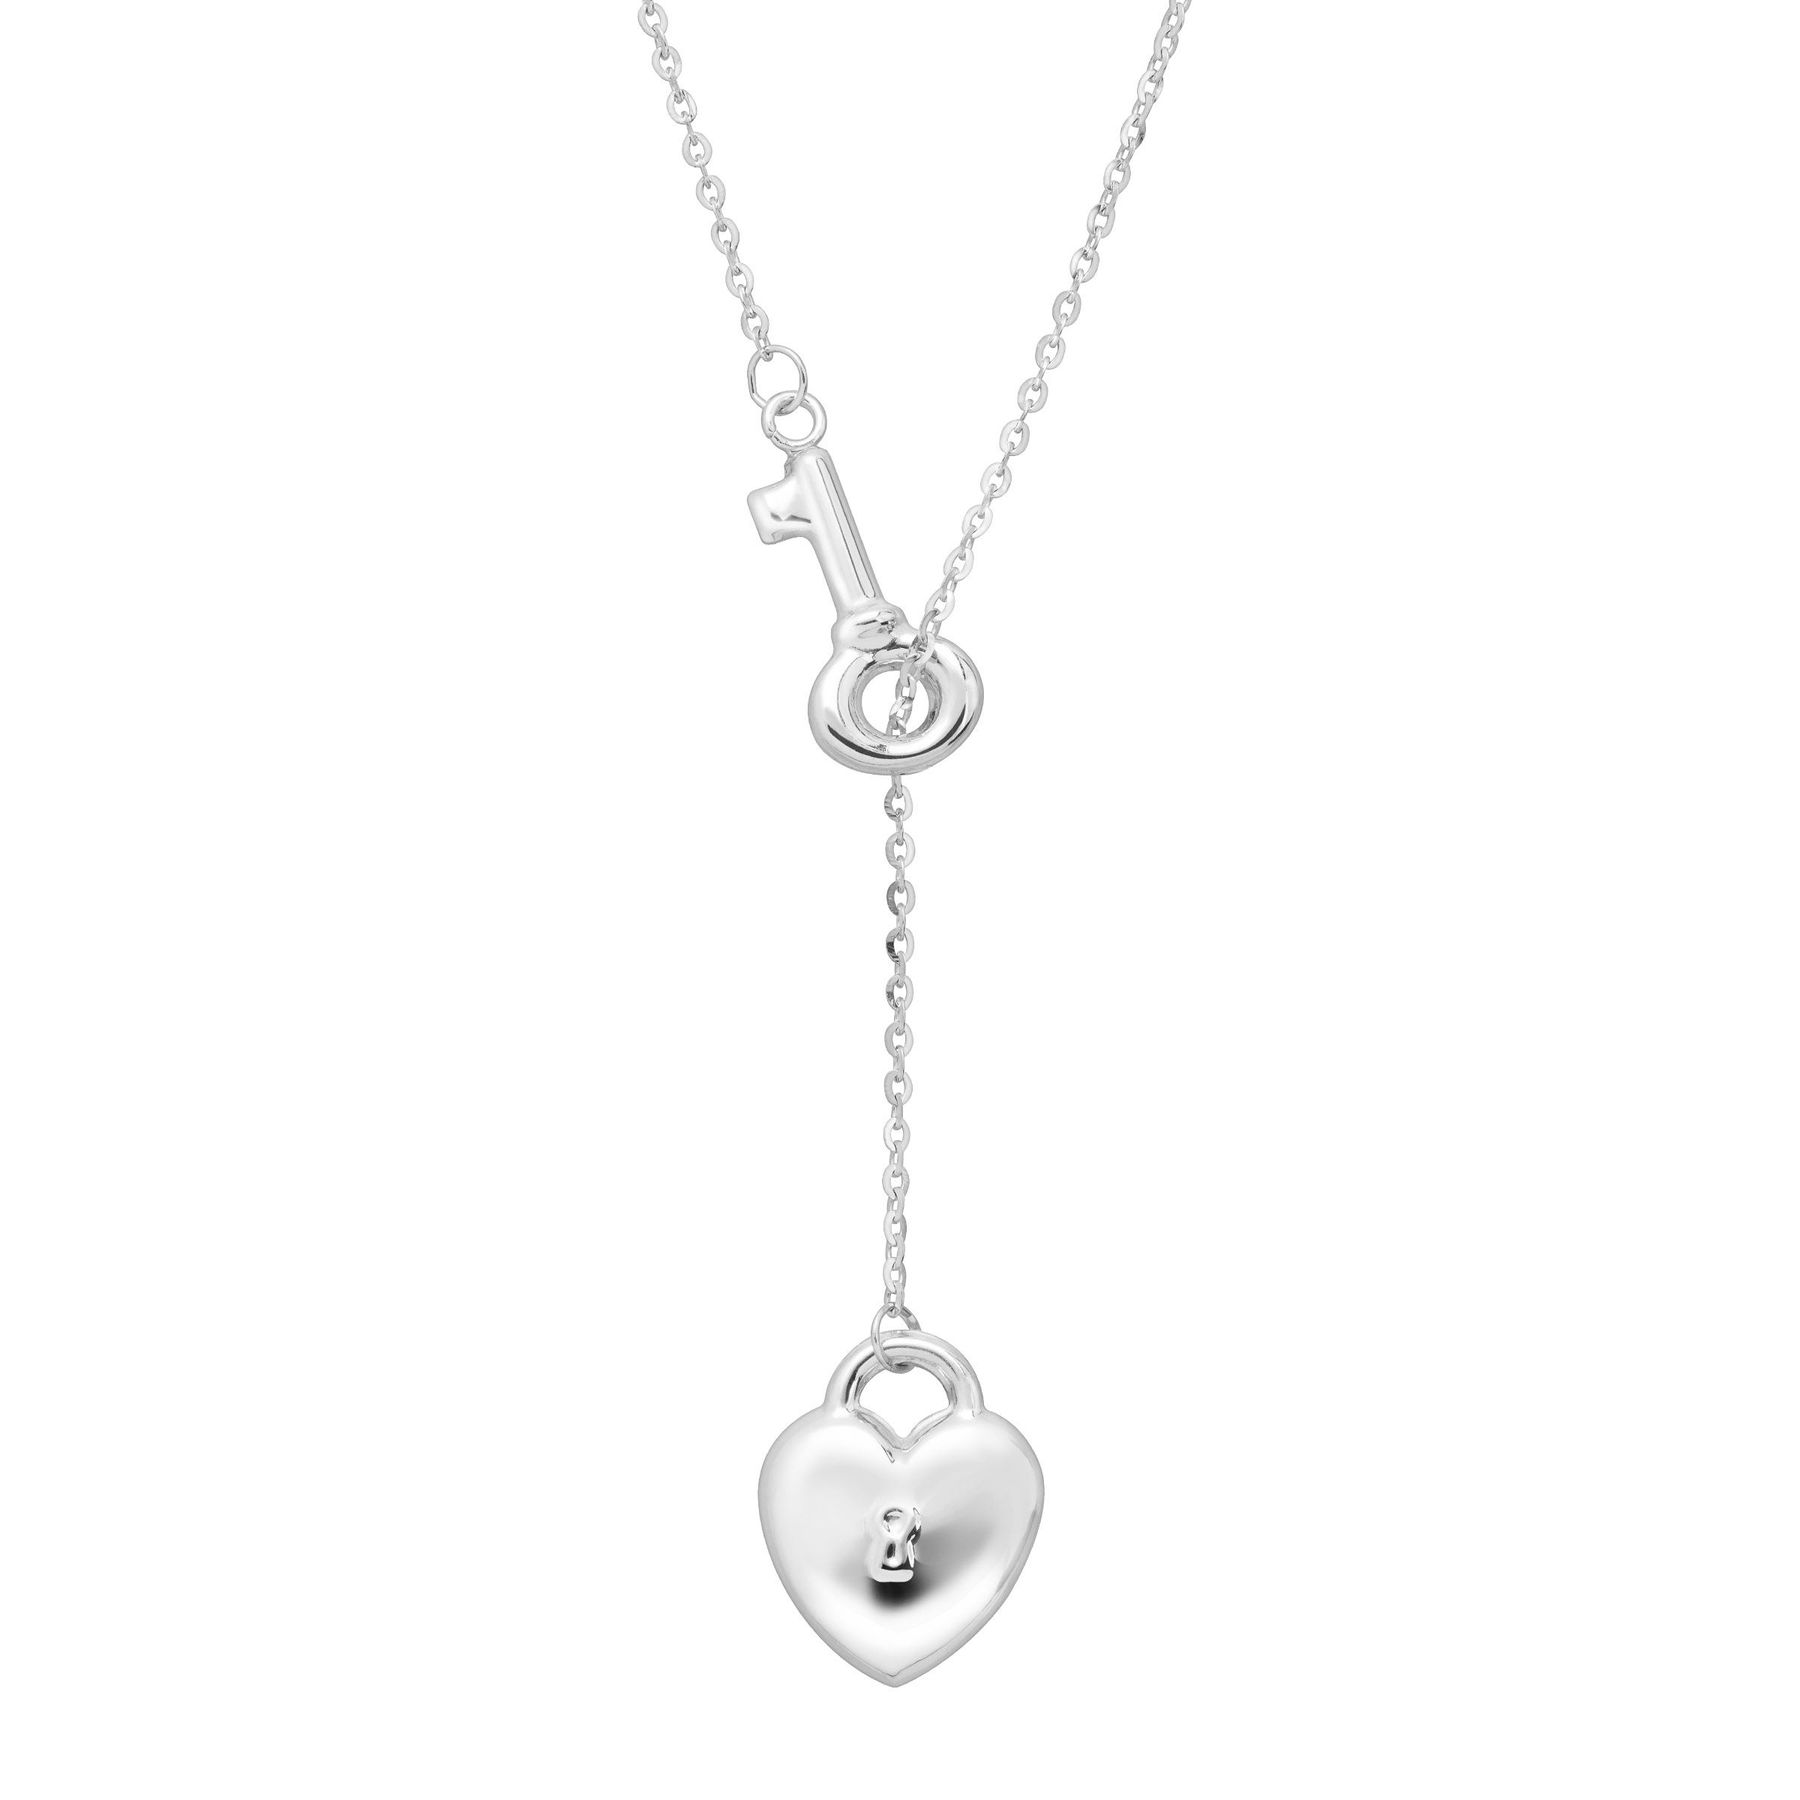 Just gold heart lock key lariat necklace in 14k white gold heart heart lock key lariat necklace aloadofball Gallery